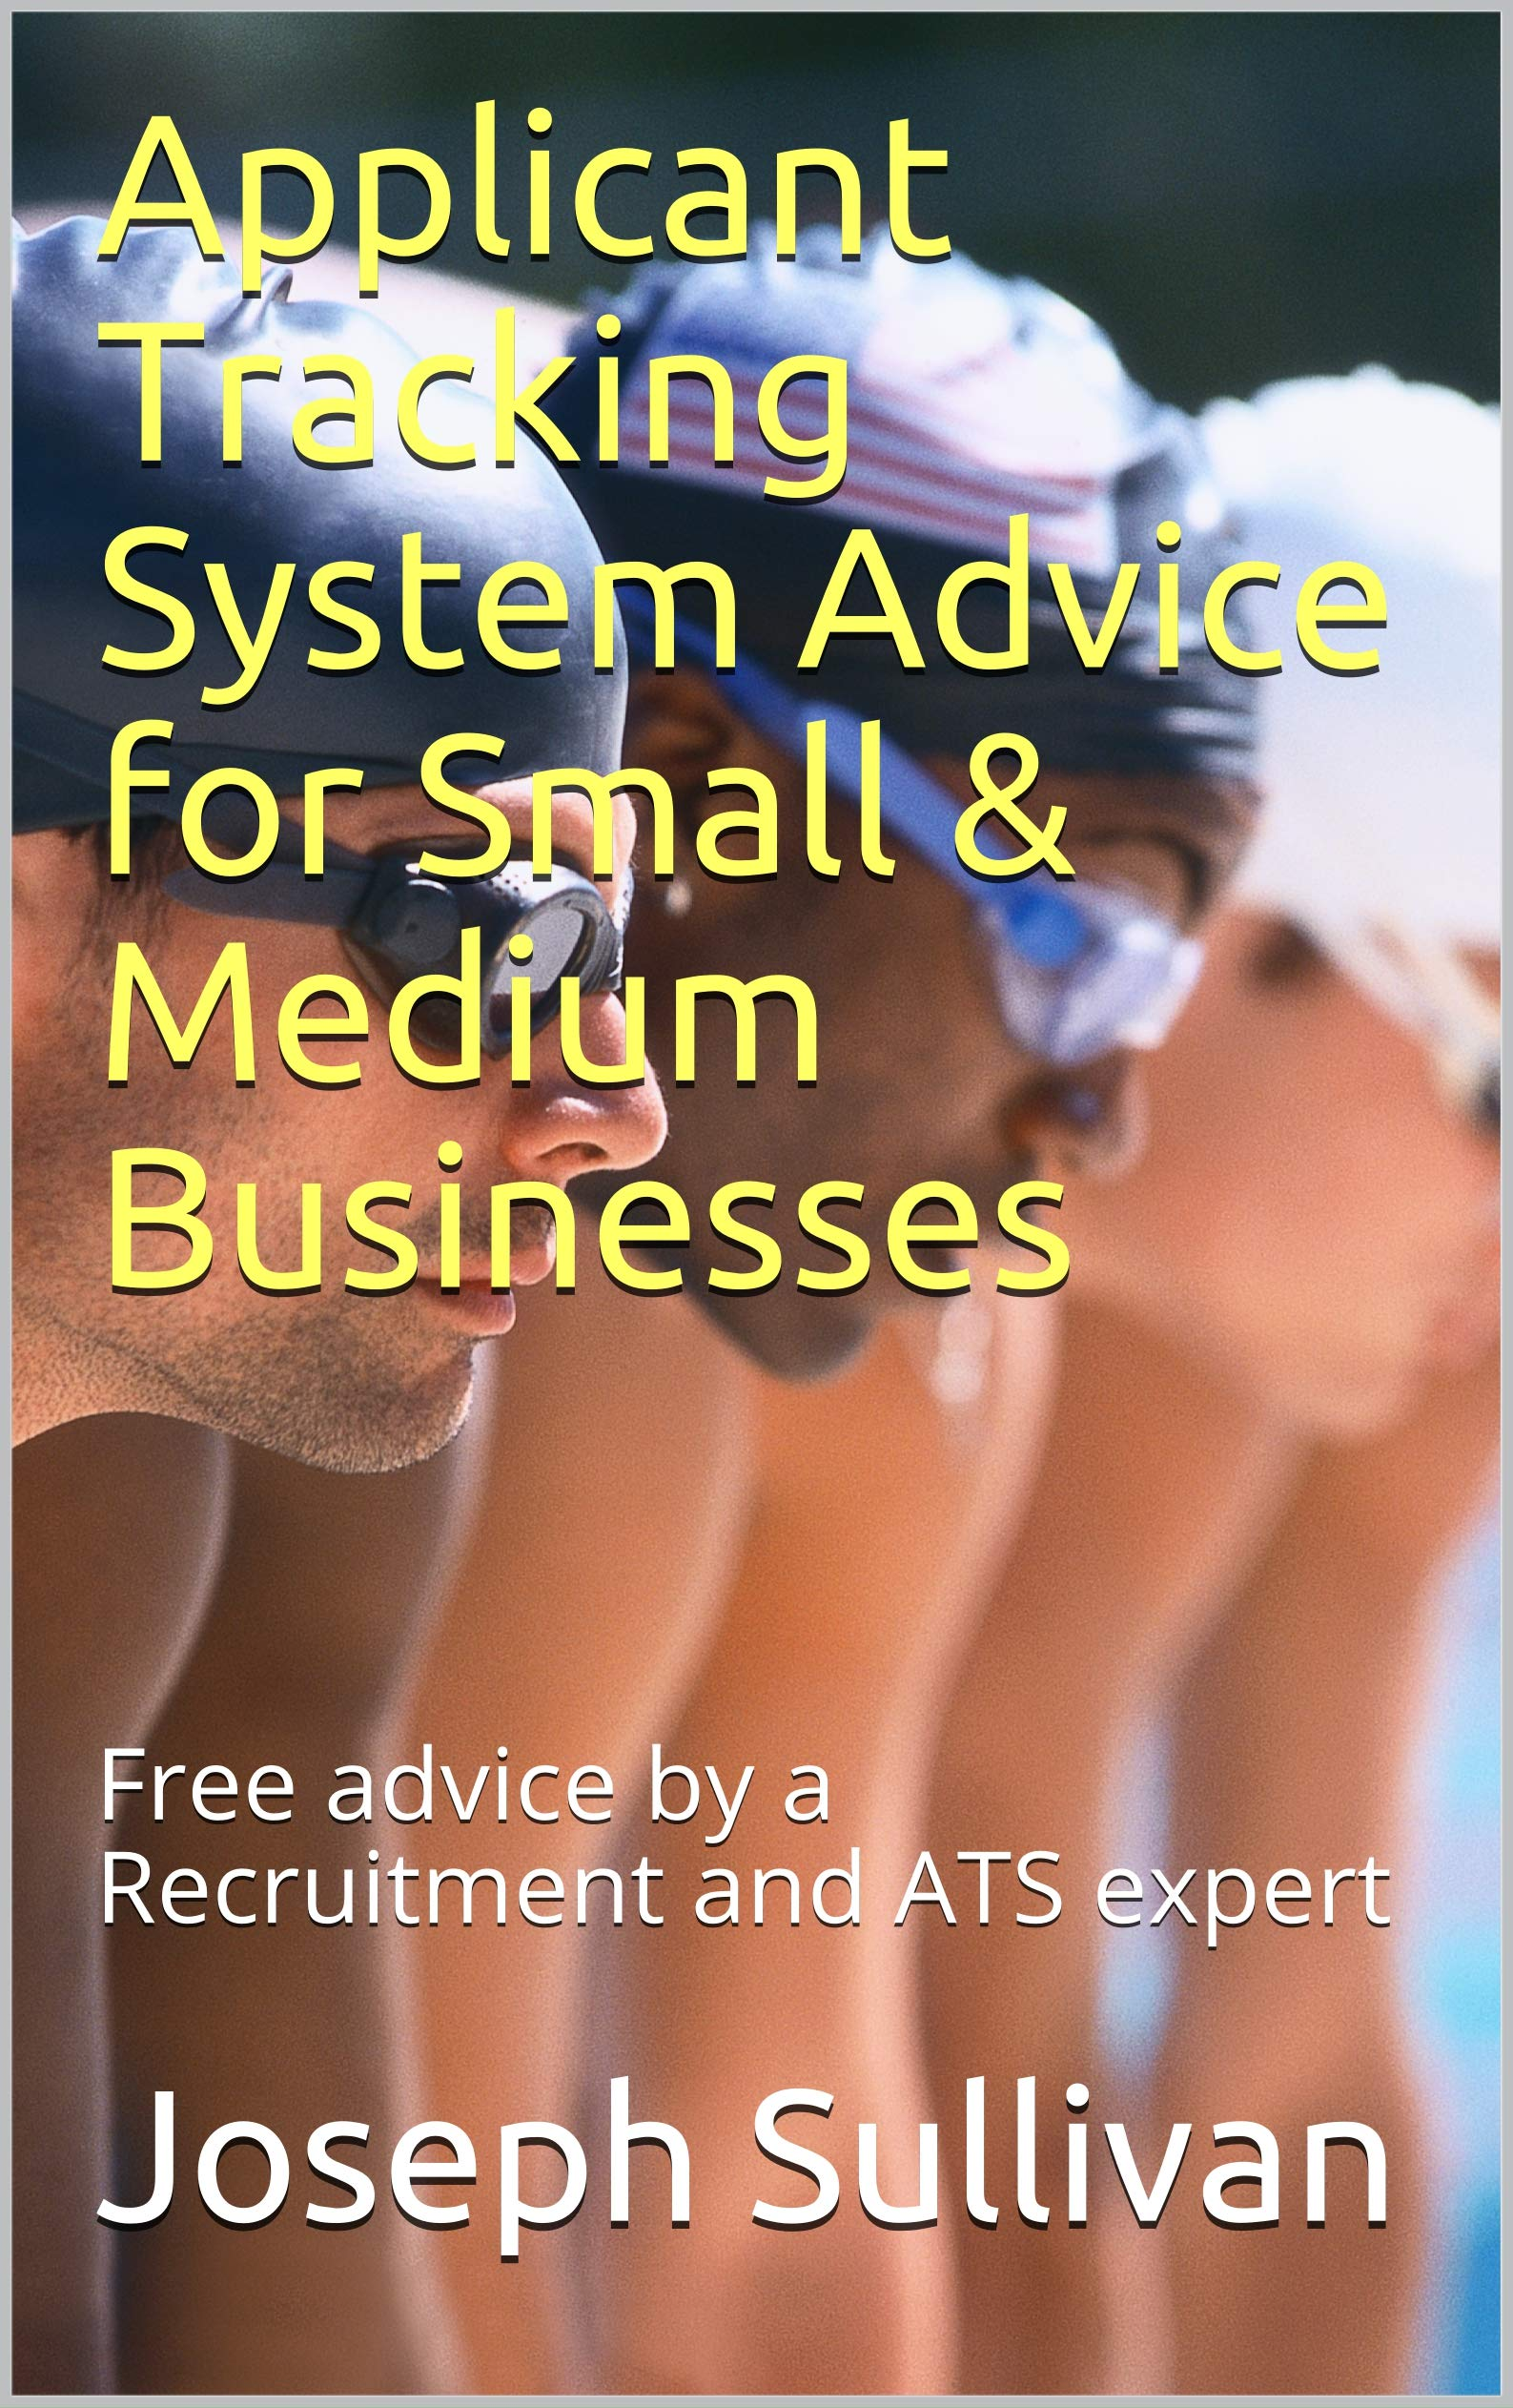 Applicant Tracking System Advice for Small & Medium Businesses: Free advice by a Recruitment and ATS expert